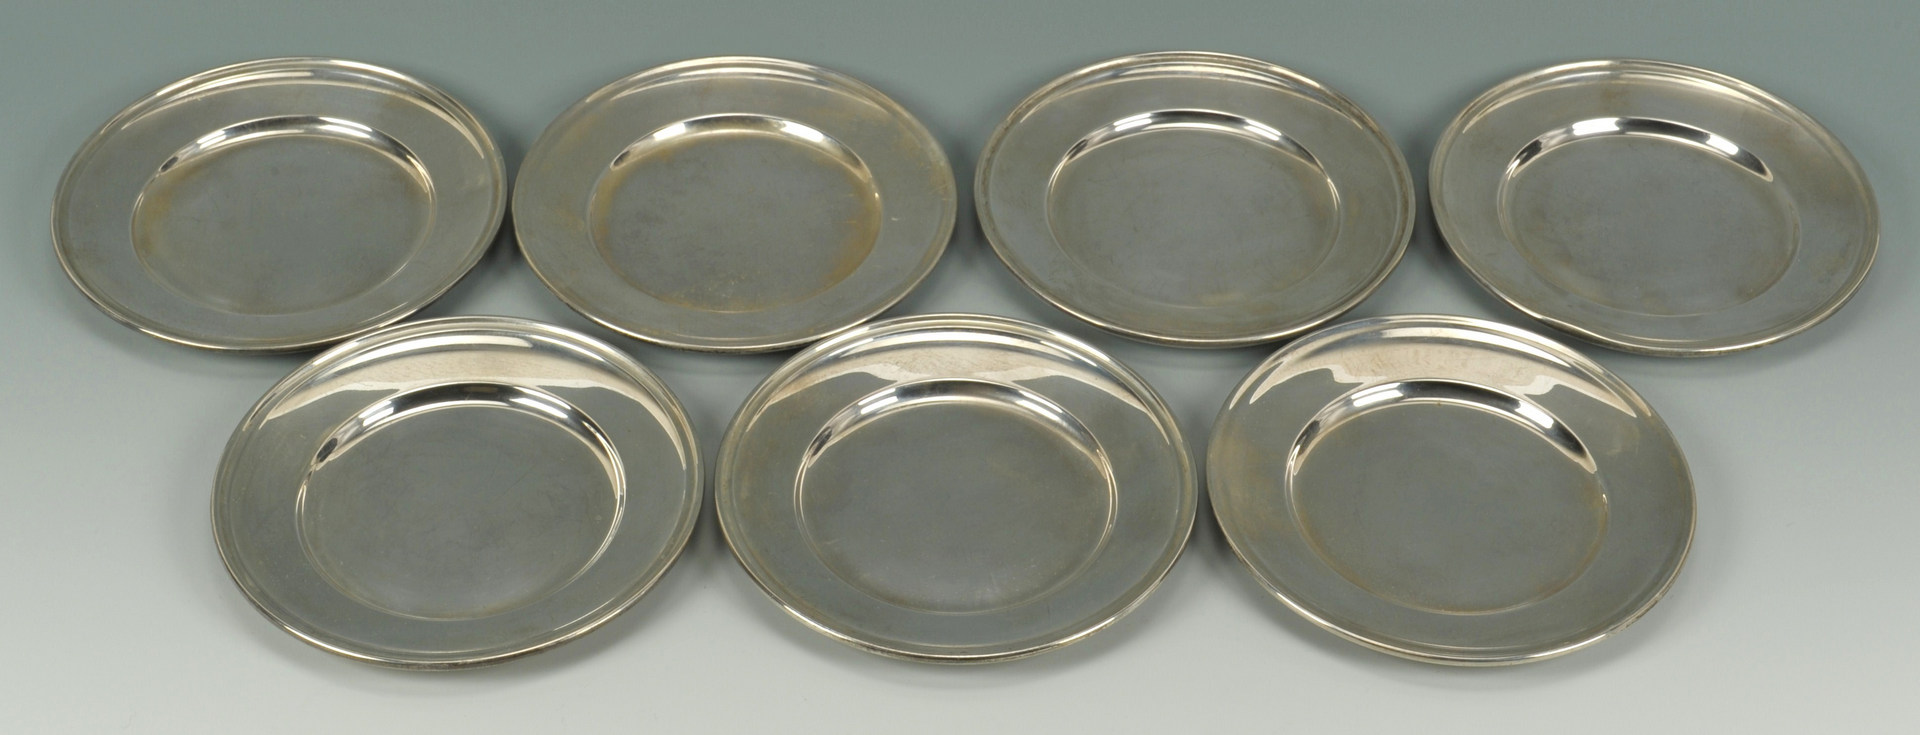 Lot 421 7 Gorham Sterling Silver Bread Plates